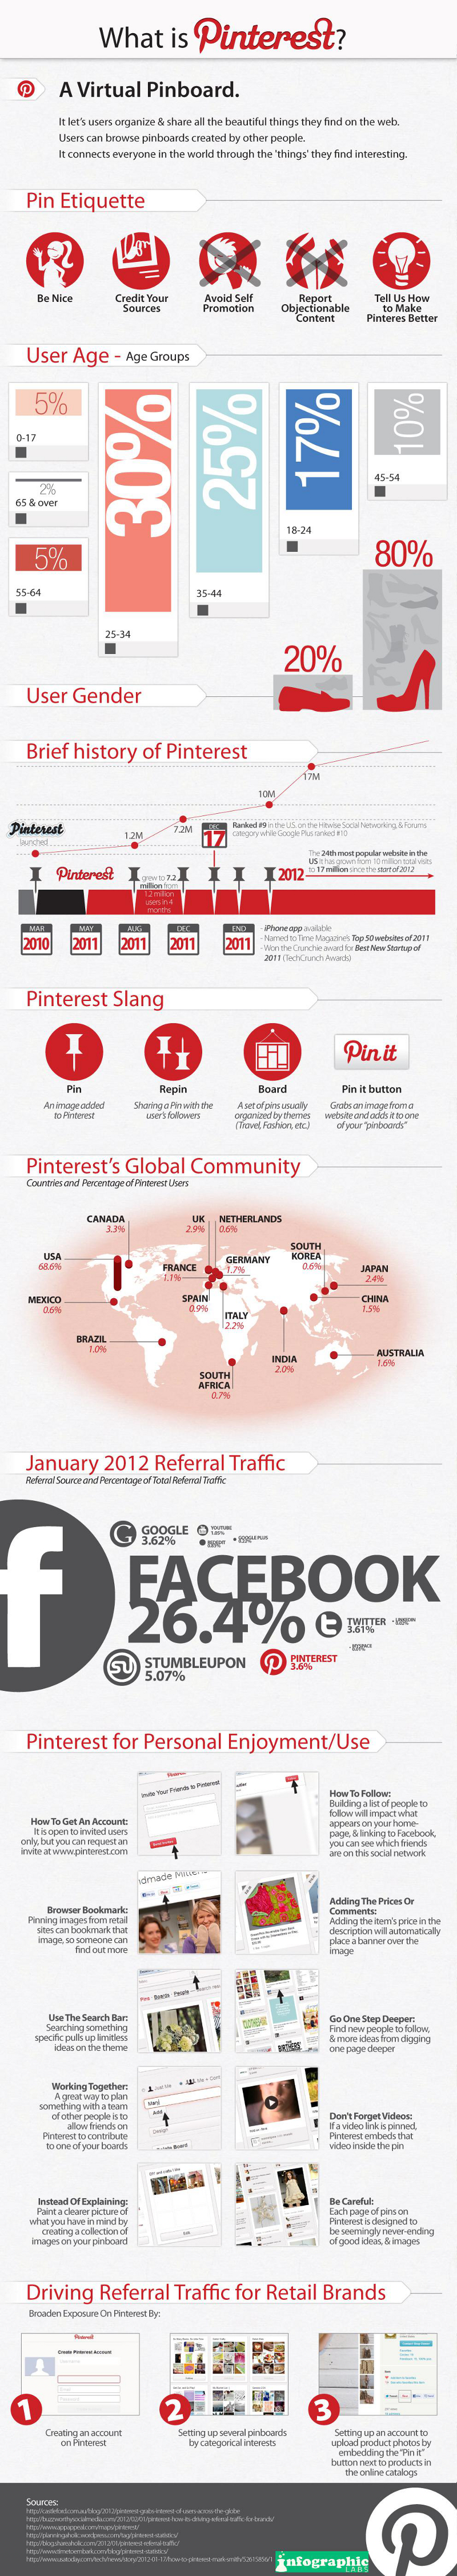 Pinterest User Age Demographics1 Pinterest User Age Demographics